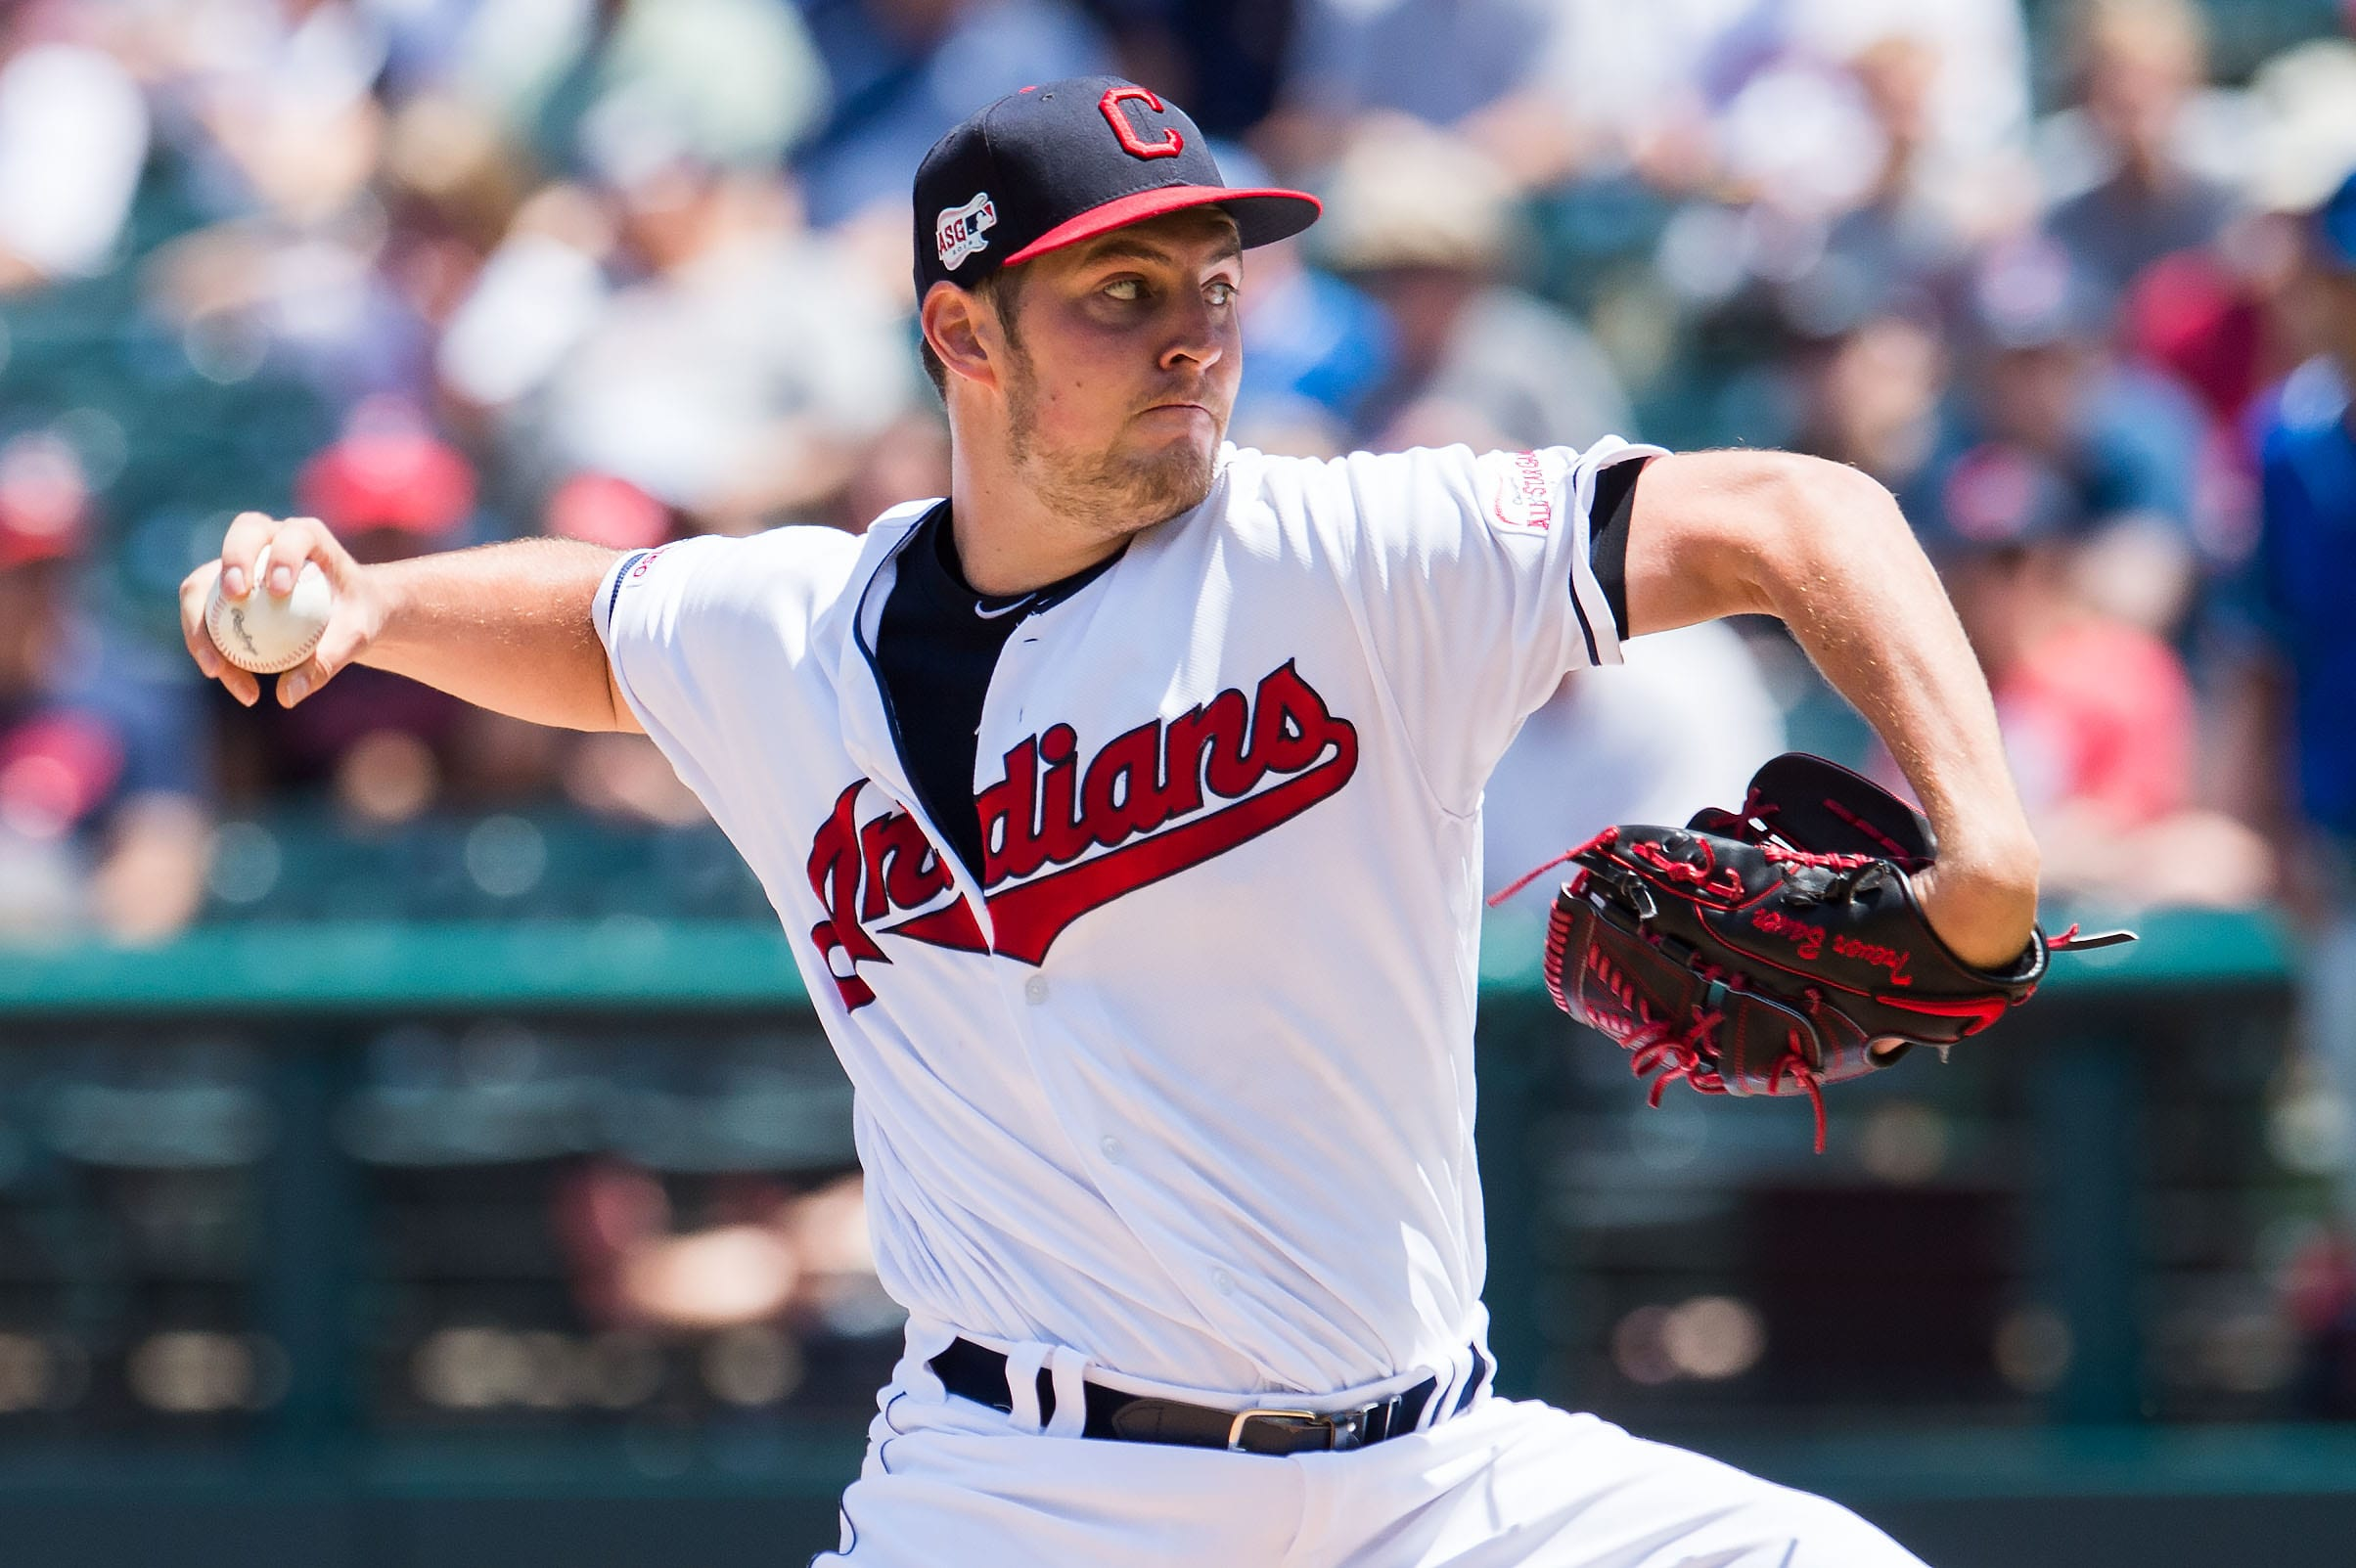 The New York Yankees are looking into Cleveland Indians pitcher, Trevor Bauer.